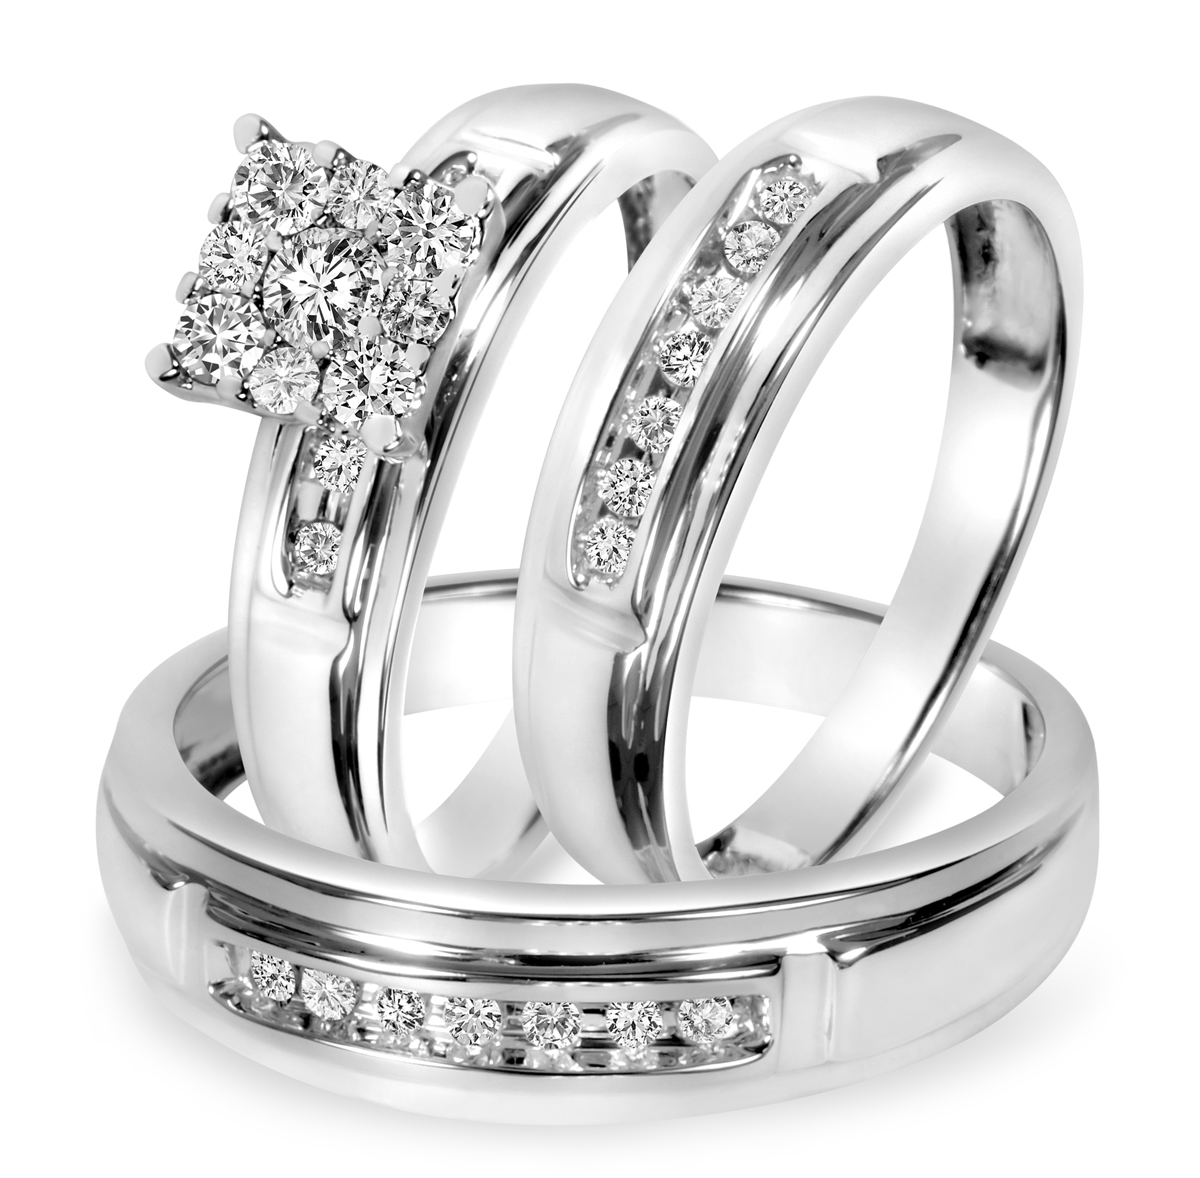 Set Wedding Rings 1 2 CT T W Diamond Trio Matching Wedding Ring Set 14K